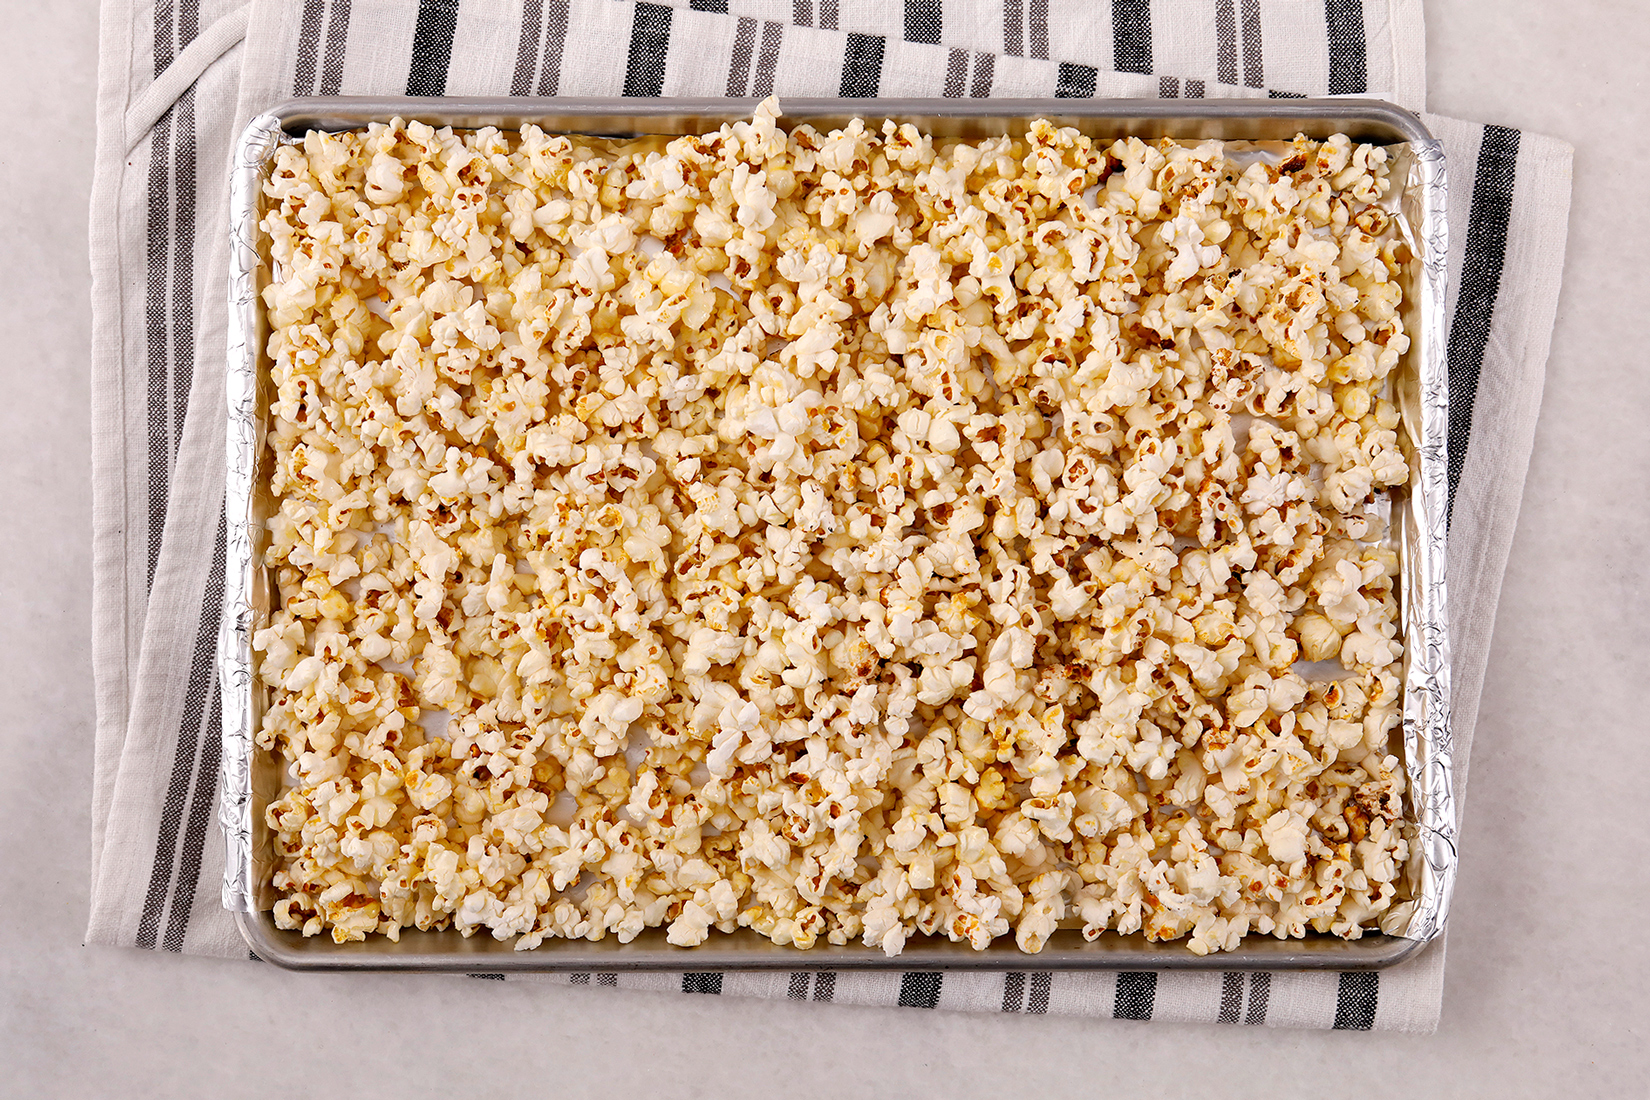 pan birds-eye view with popped kettle corn